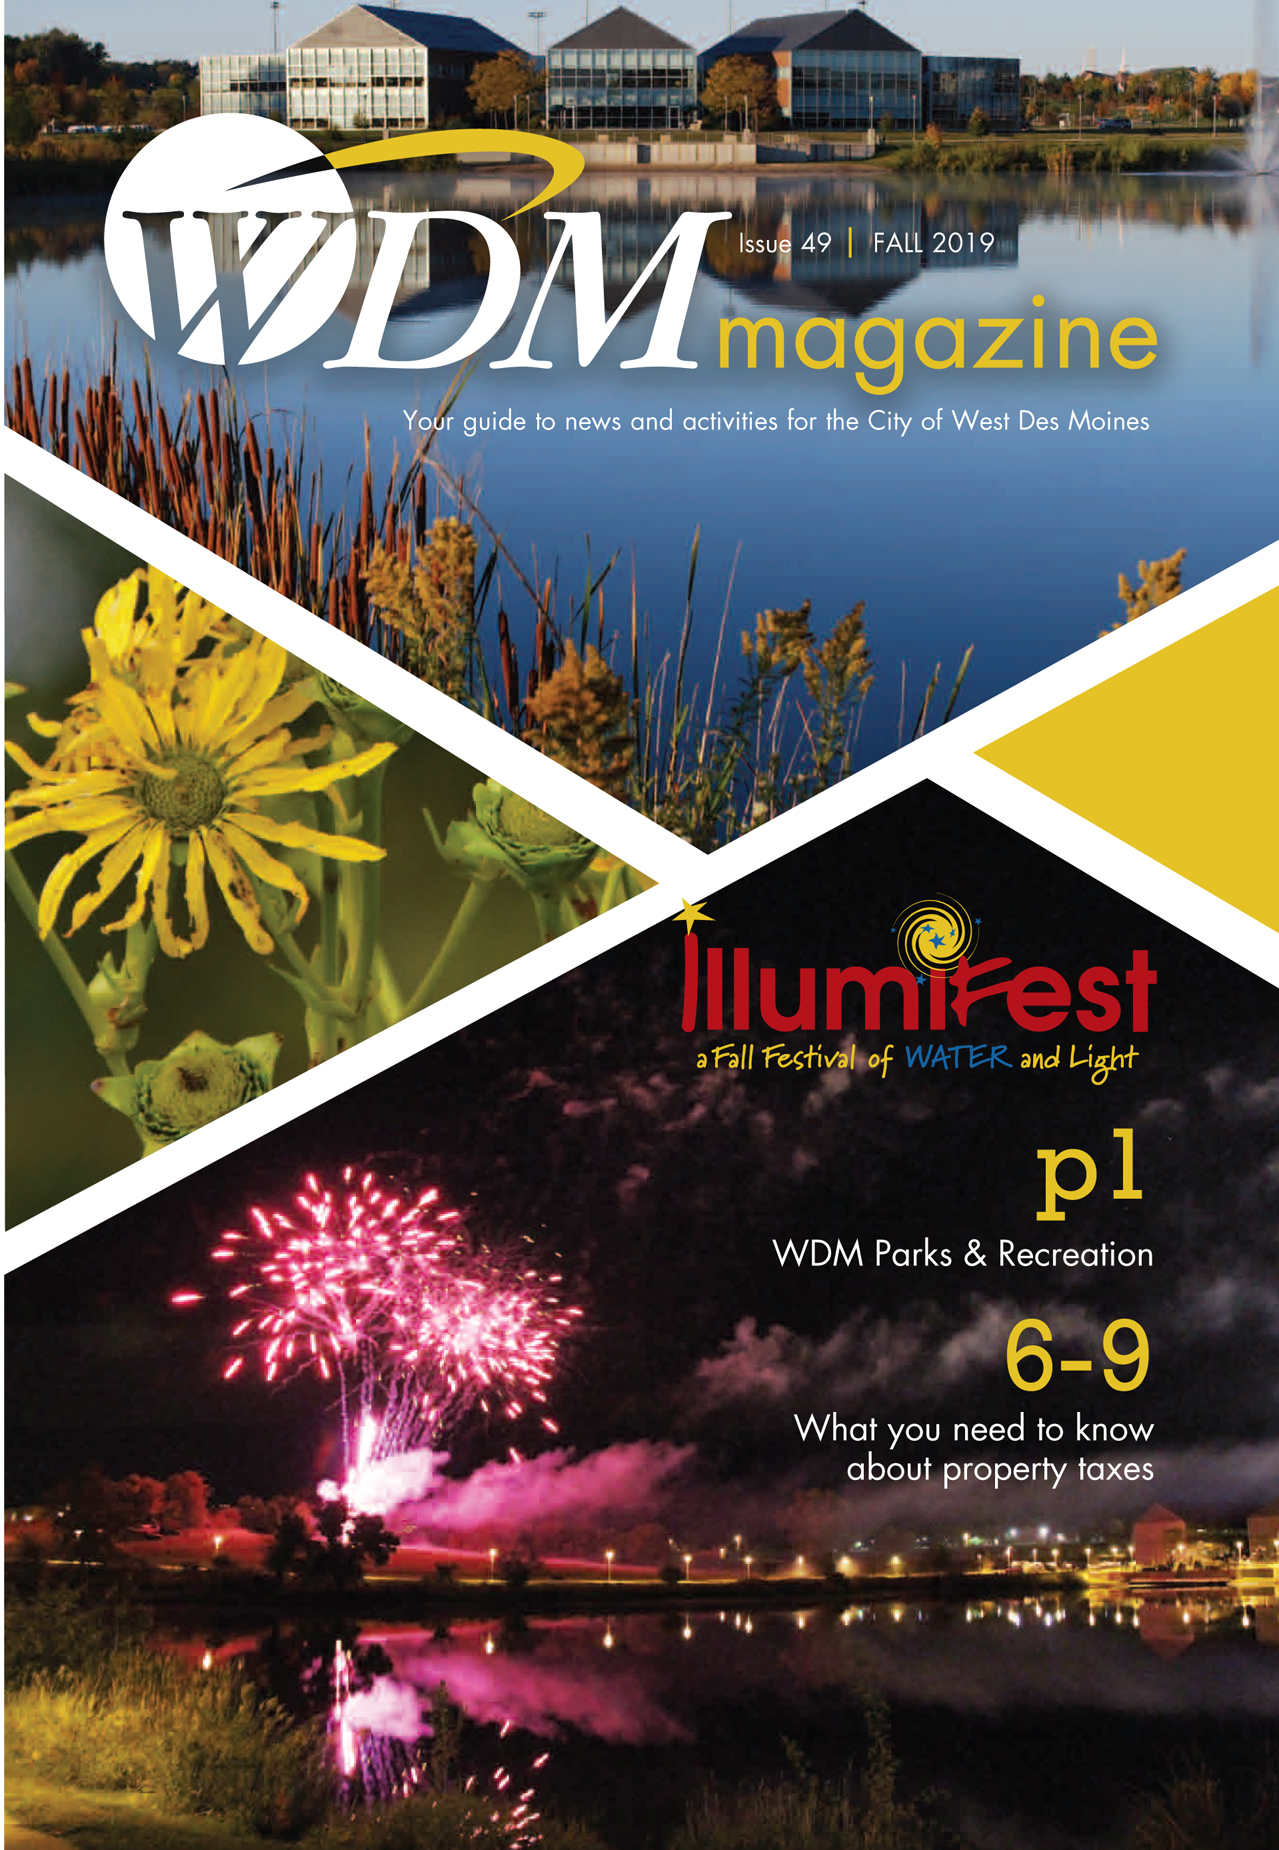 Cover image of the Fall 2019 West Des Moines magazine